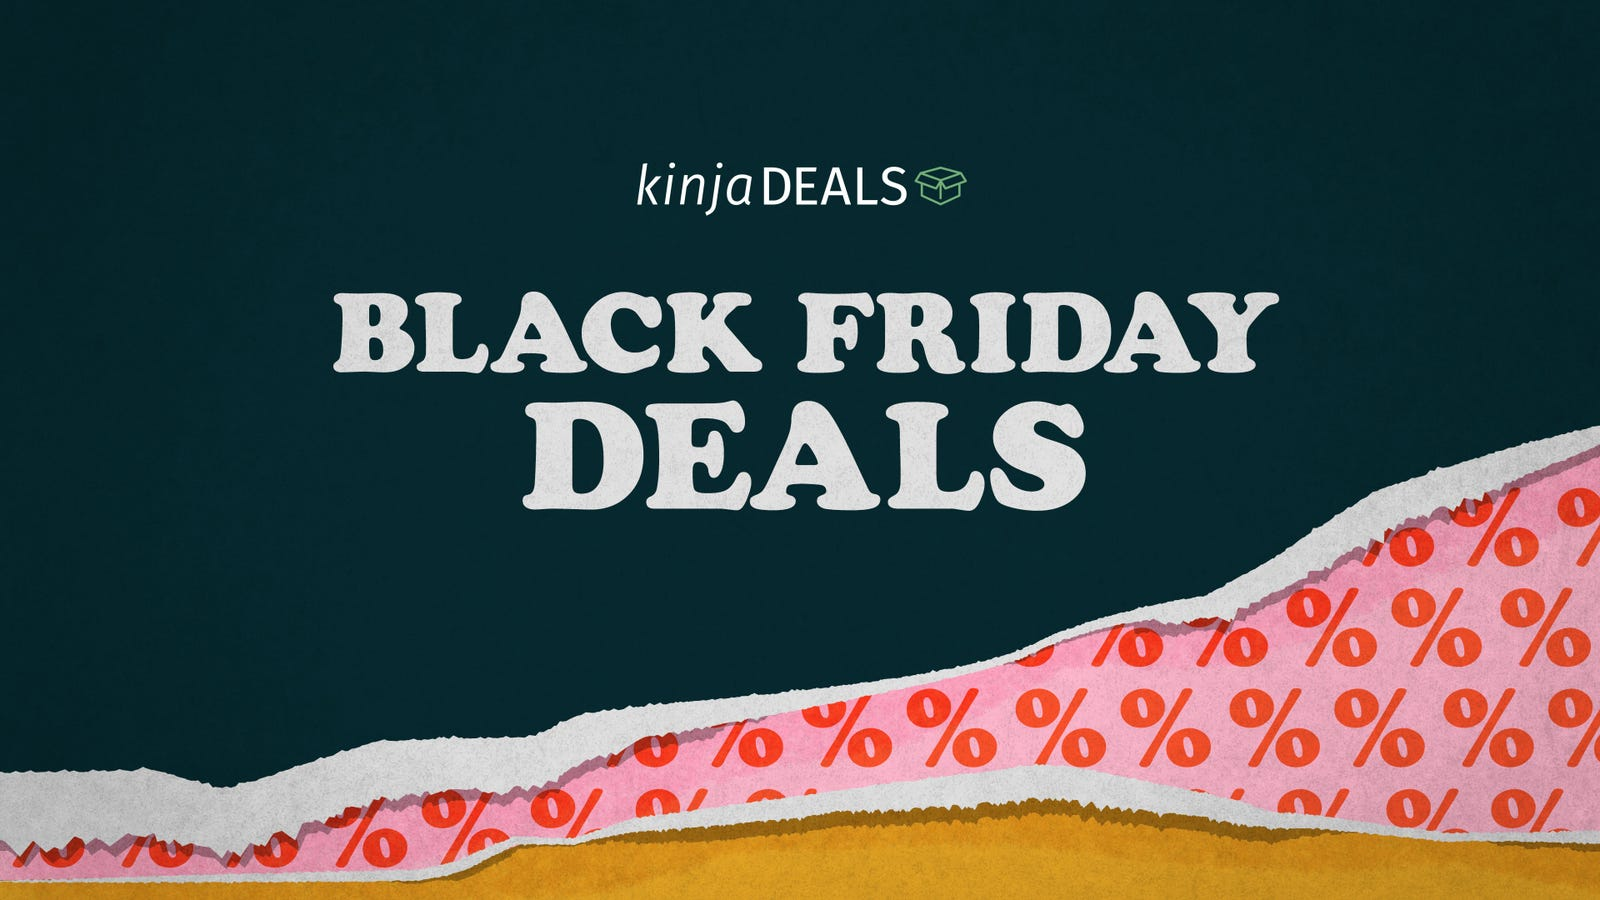 The 15 Best Black Friday Deals